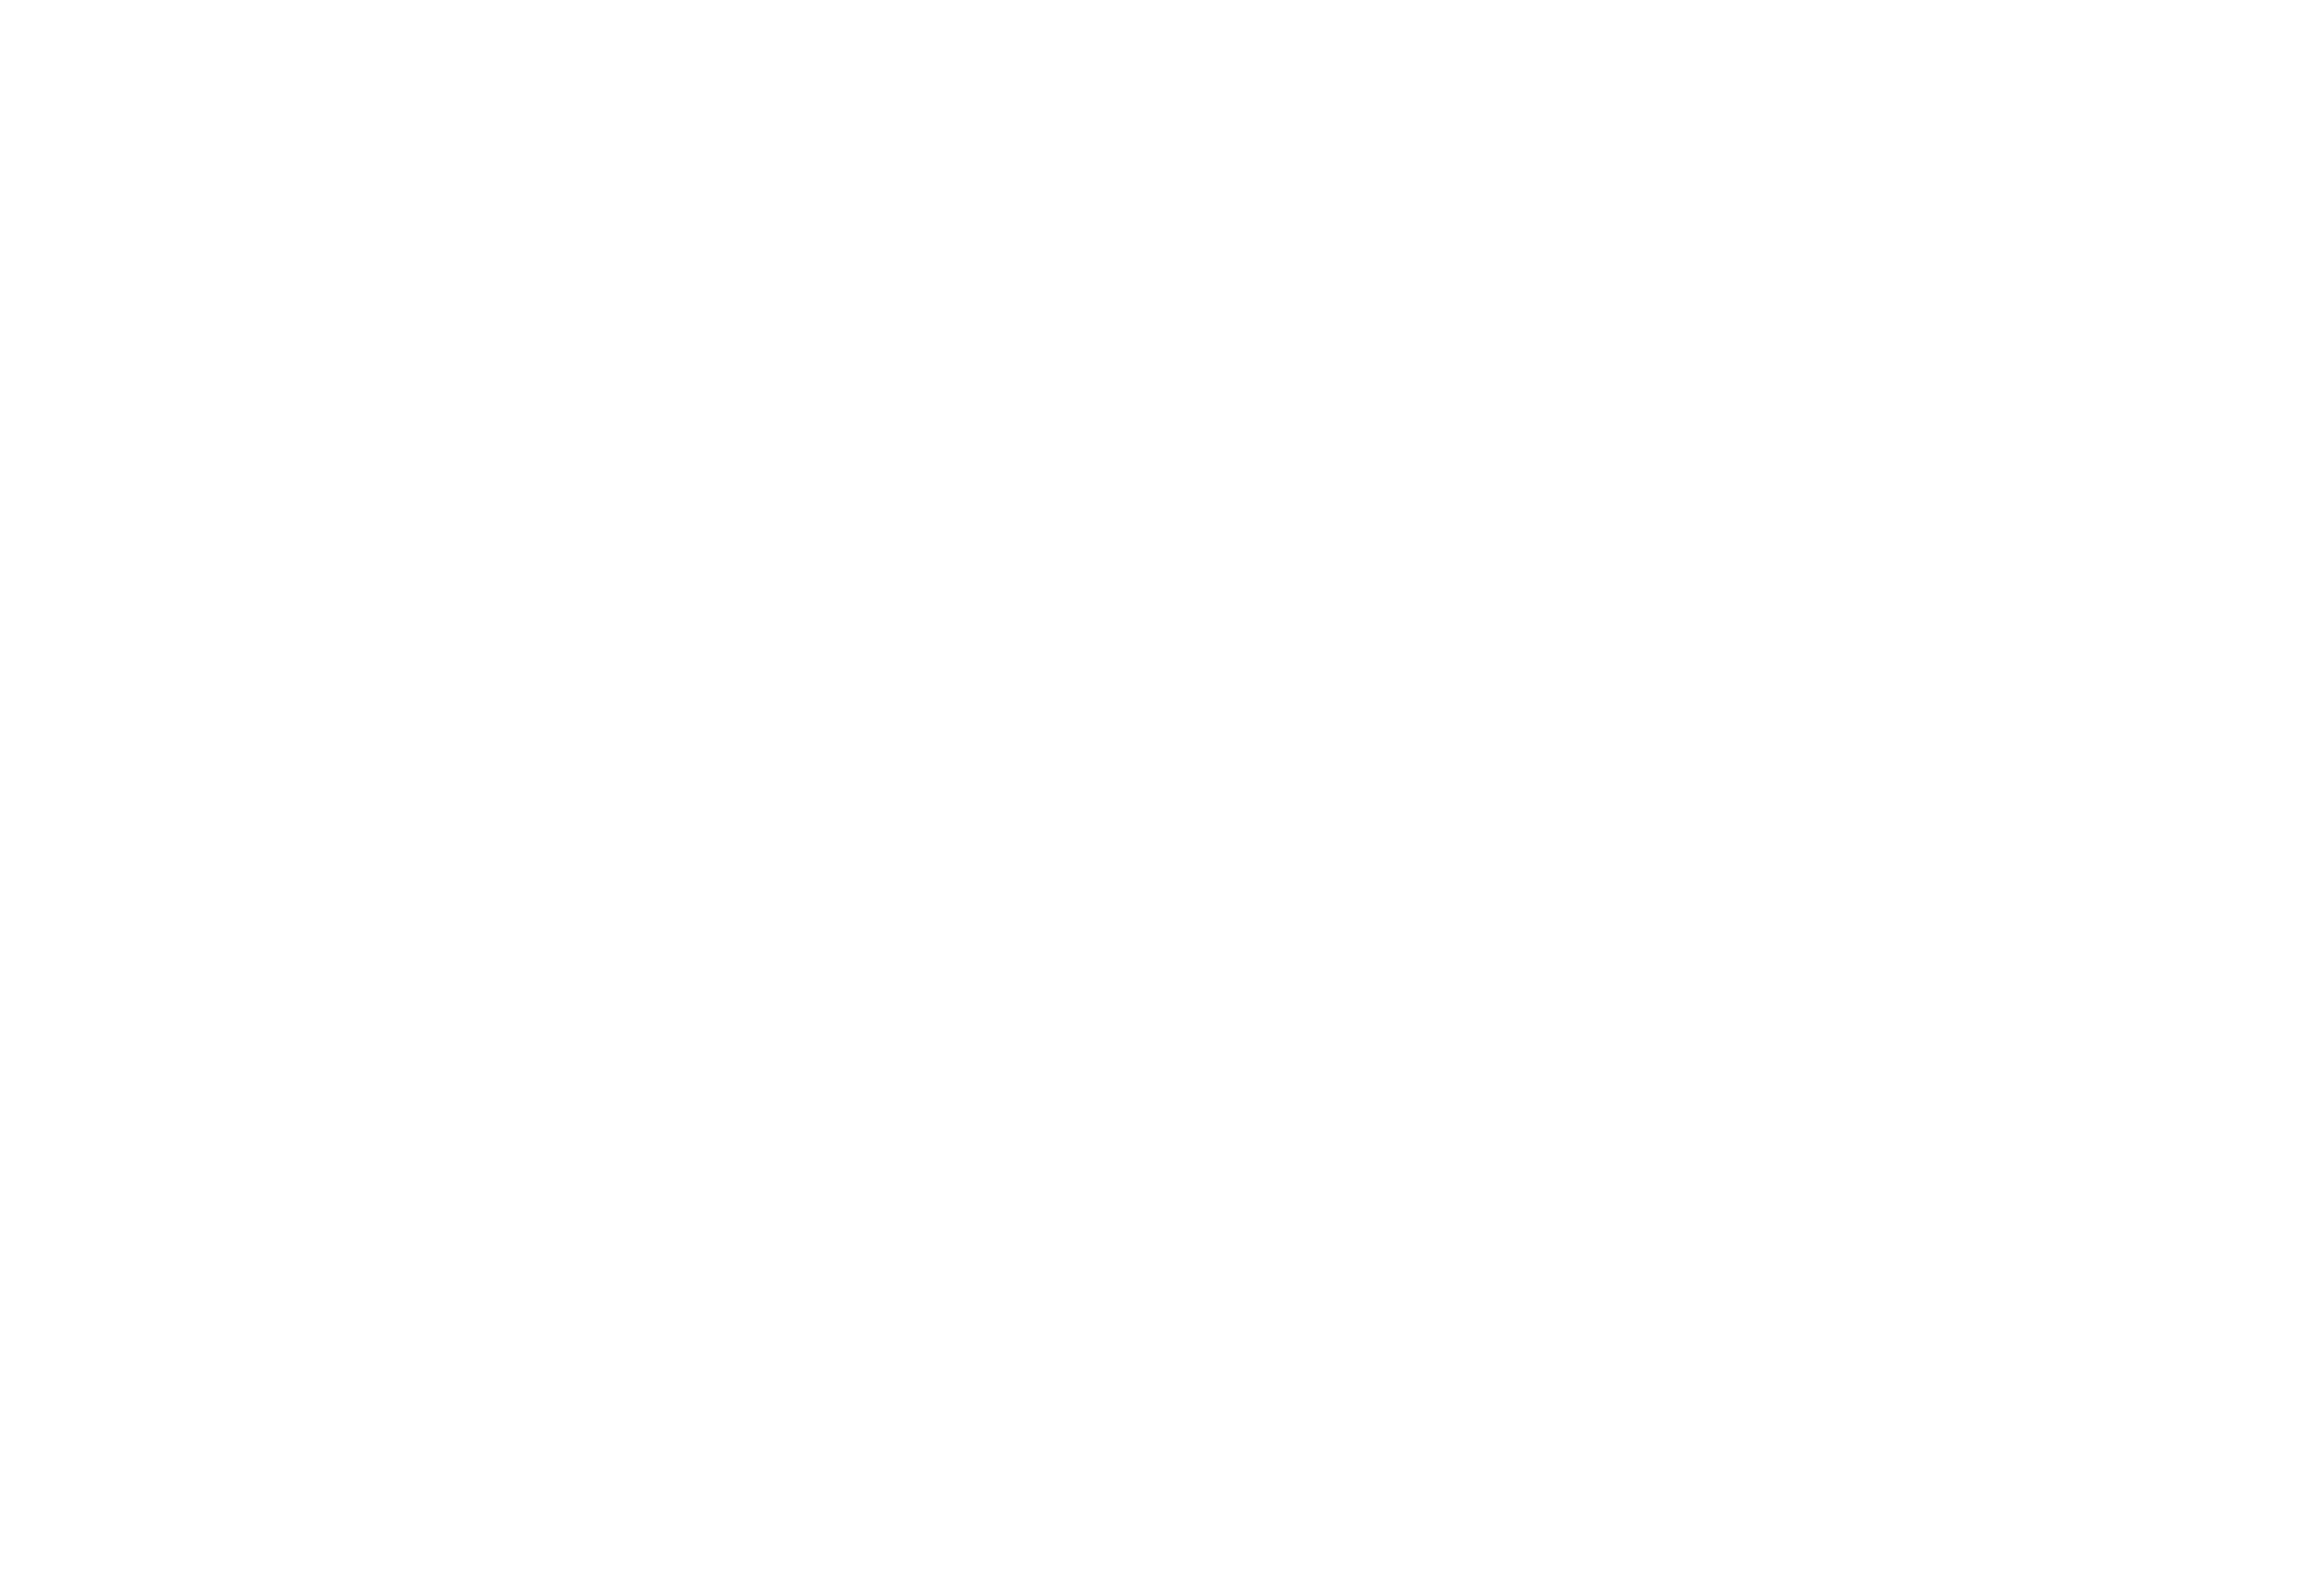 Wilson Chamber of Commerce